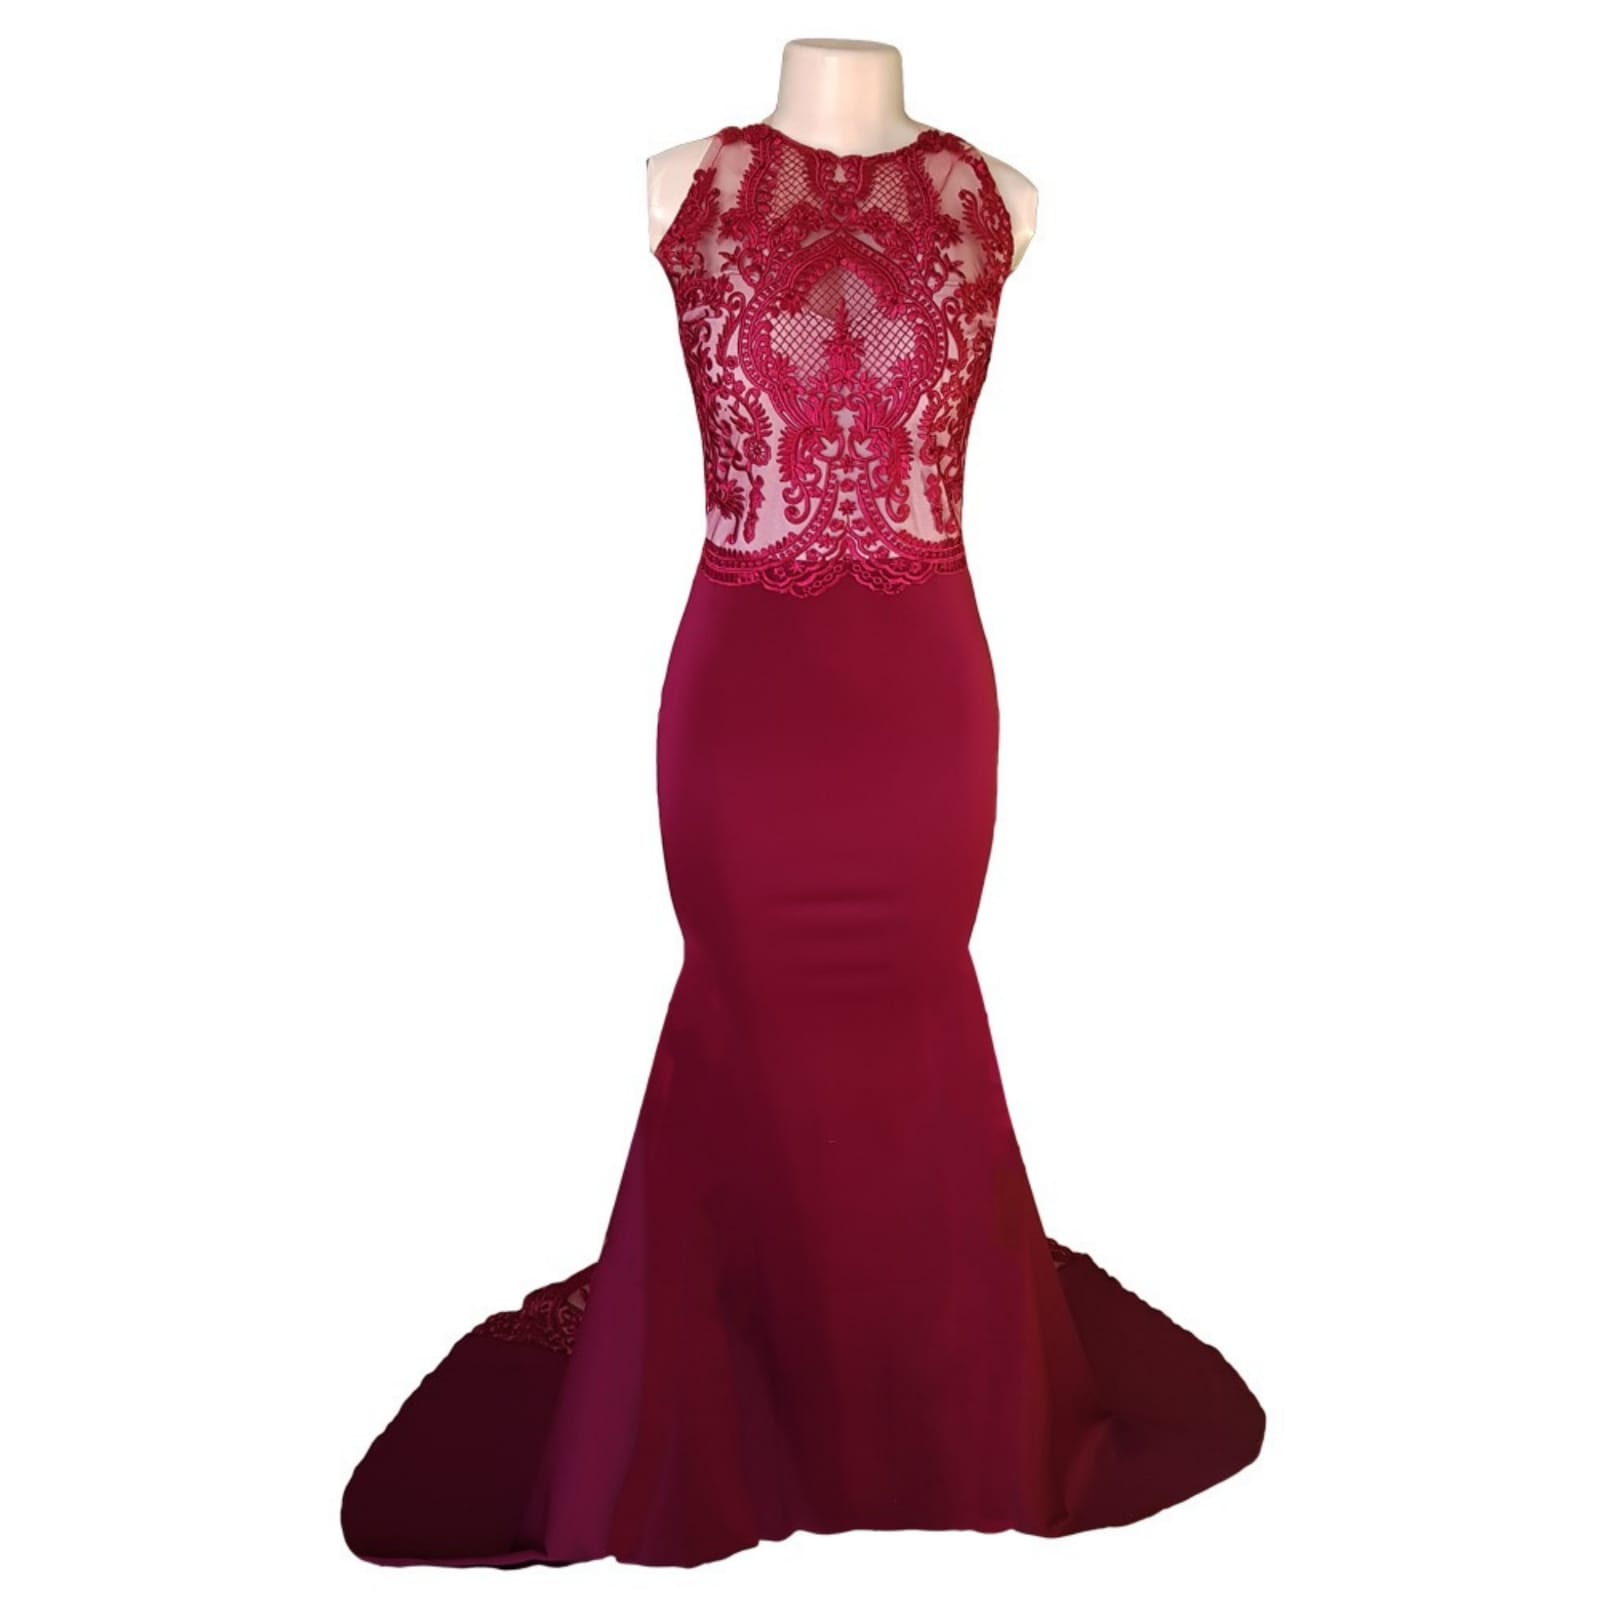 Maroon soft mermaid matric dance dress 8 maroon soft mermaid matric dance dress created to make celine look glorious in her special night. With a sheer lace train that hooks up on the side, a naked illusion back with button and lace detail adding a touch of sensuality and elegance to her look.